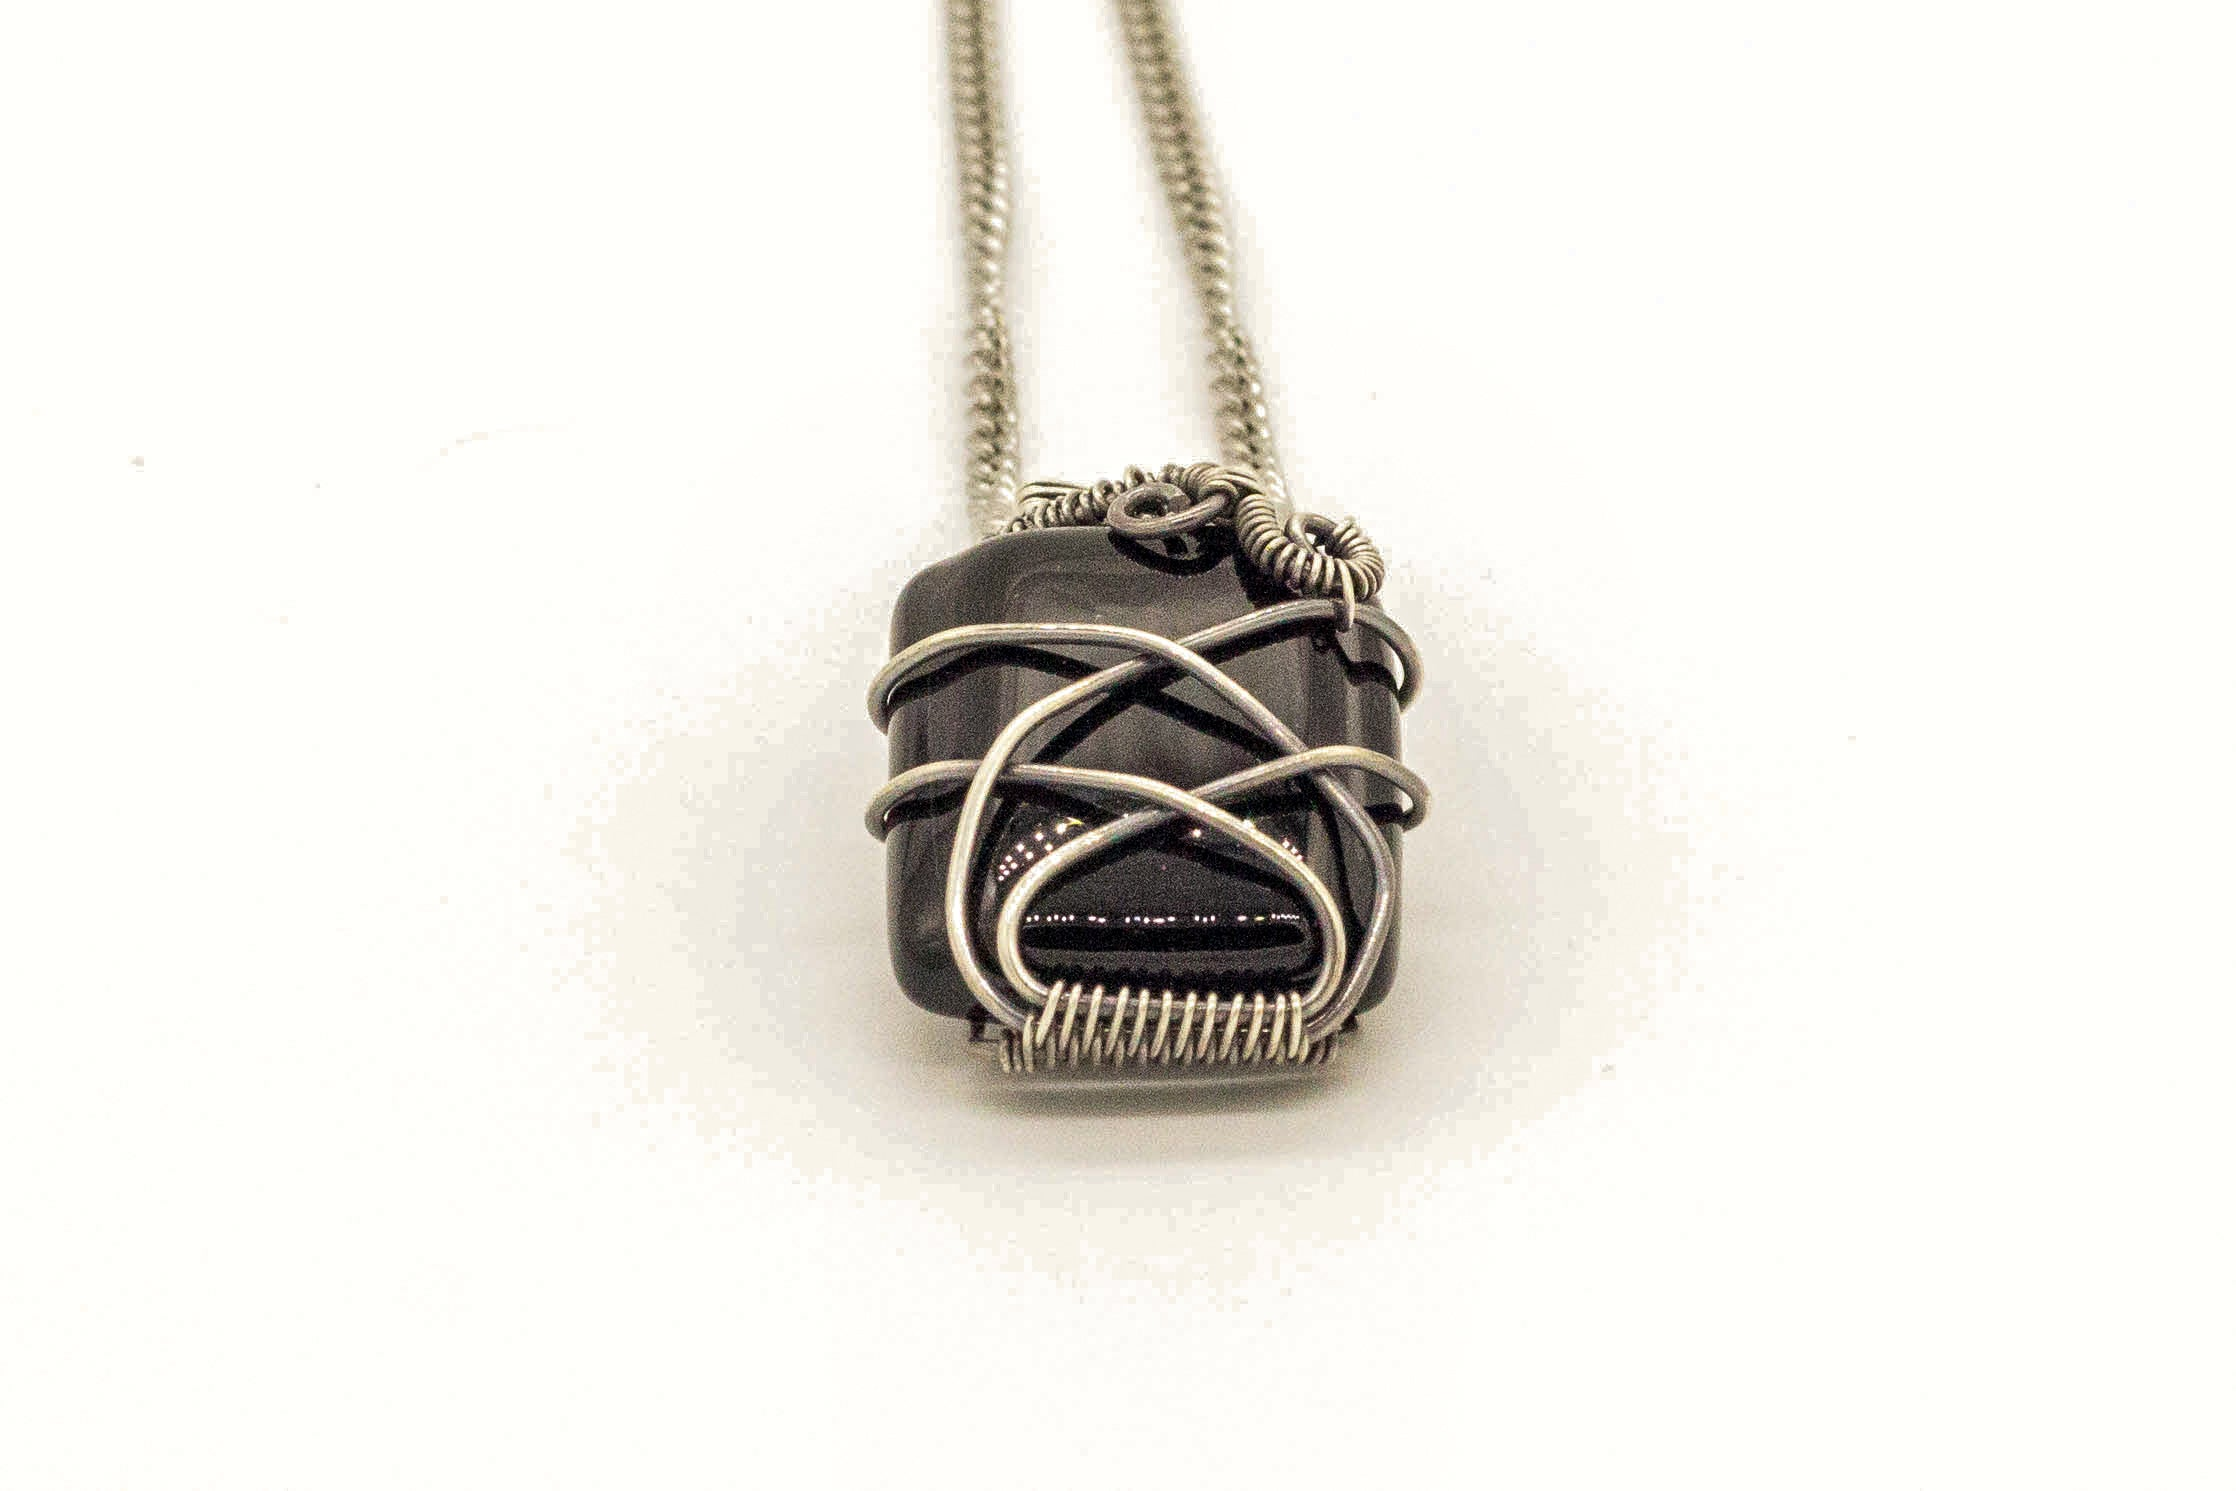 black-fused-glass-pendant-sterling-silver-wire-wrapping-nymph-in-the-woods-jewelry